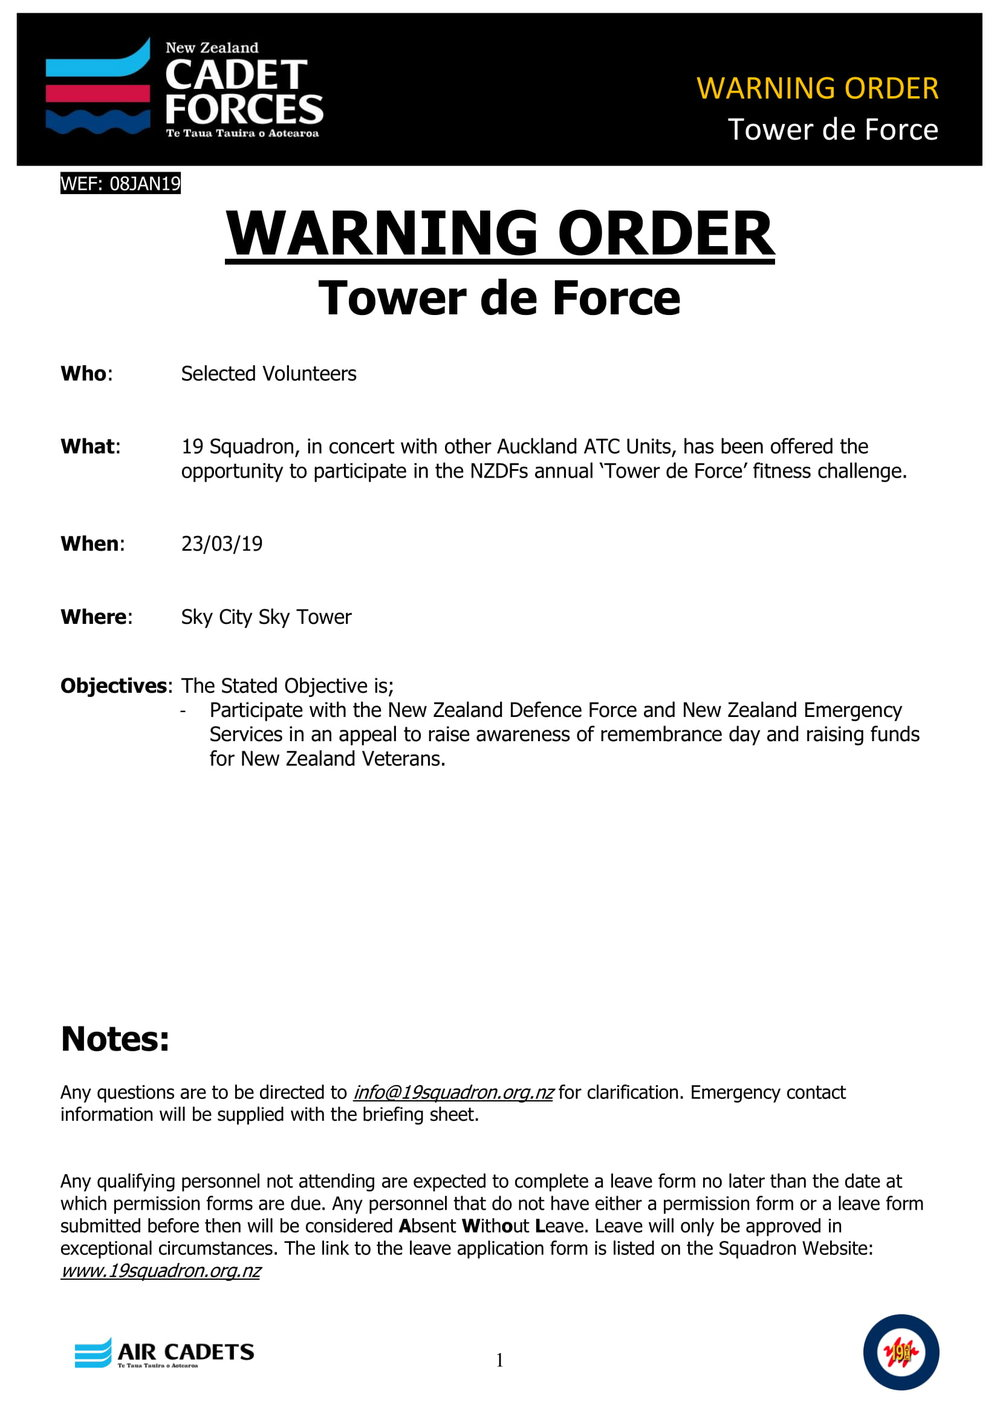 Tower de Force - Warning Order-1.jpg